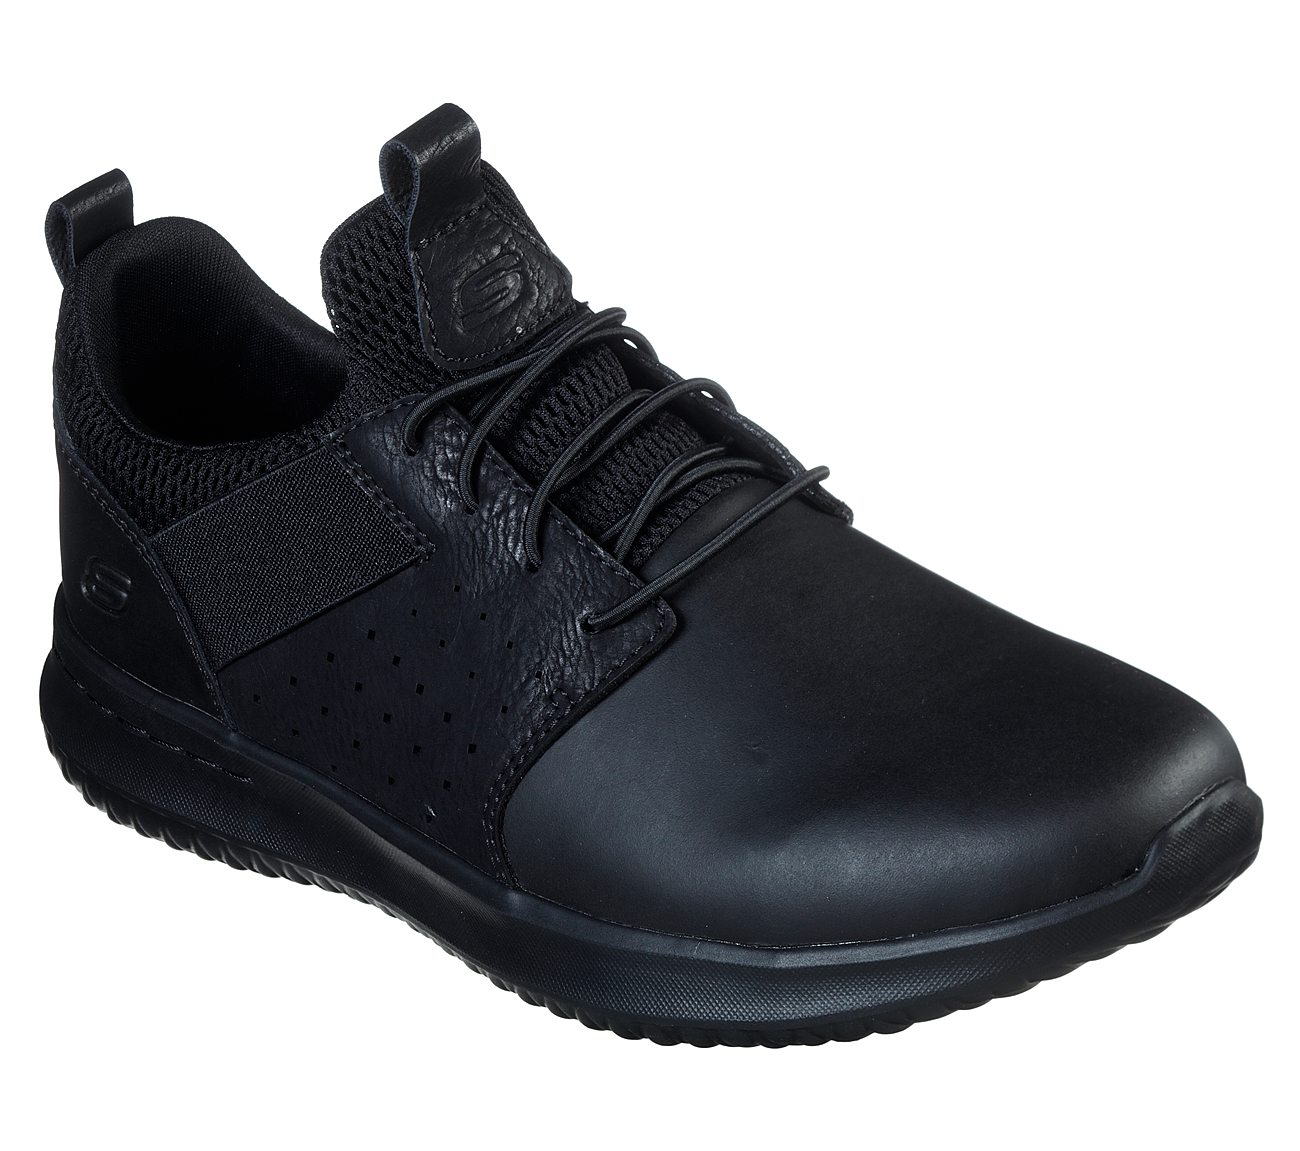 Skechers Delson Axton Trainers Mens Leather Elastic Memory